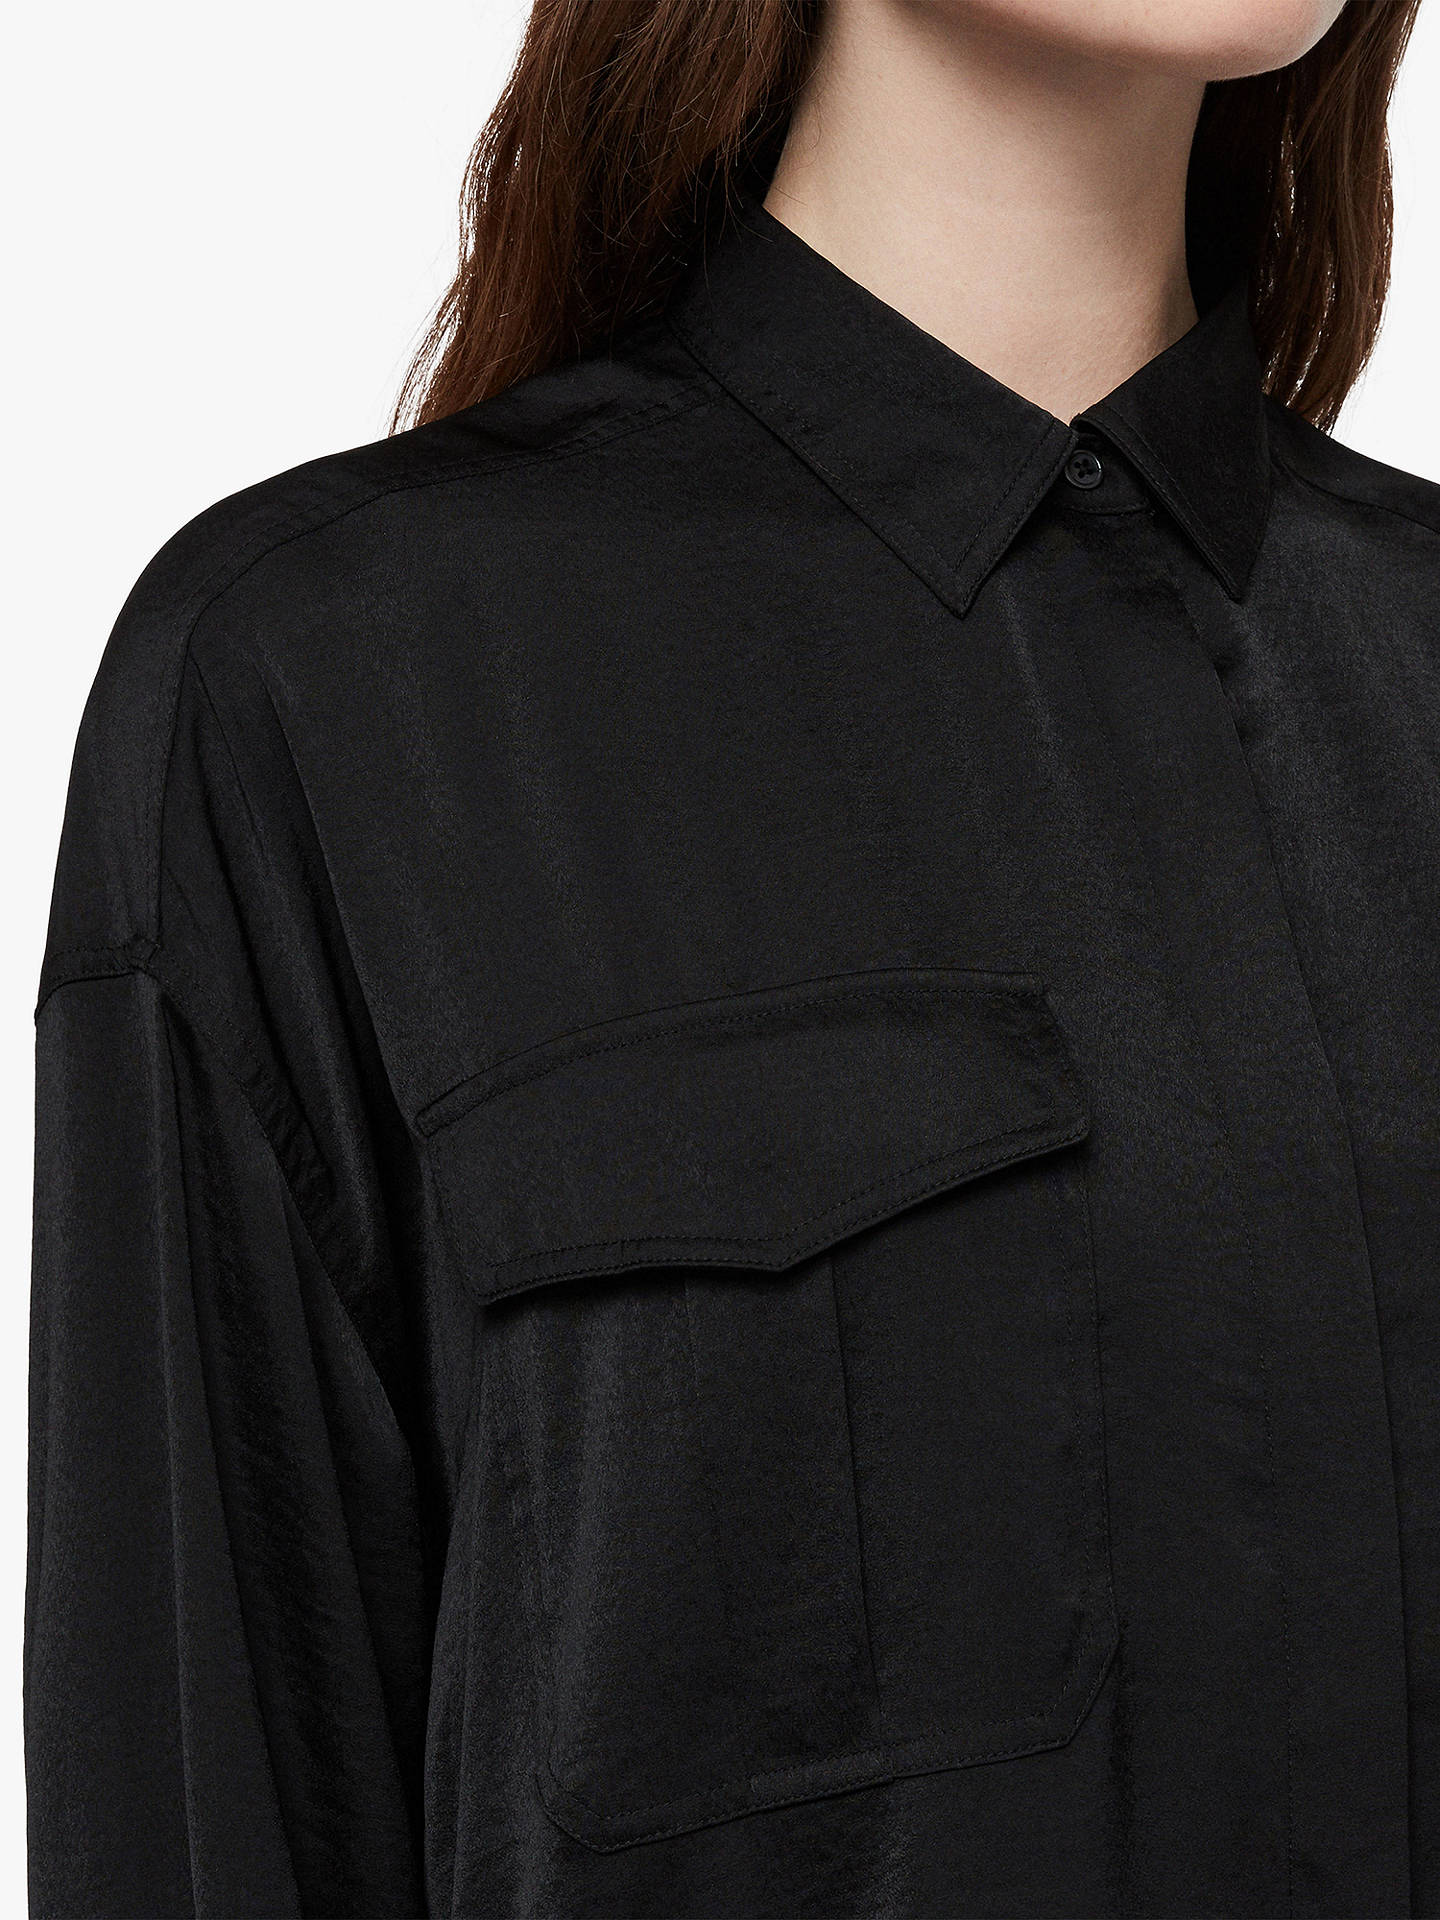 Buy AllSaints Rylee Satin Shirt, Black, S Online at johnlewis.com